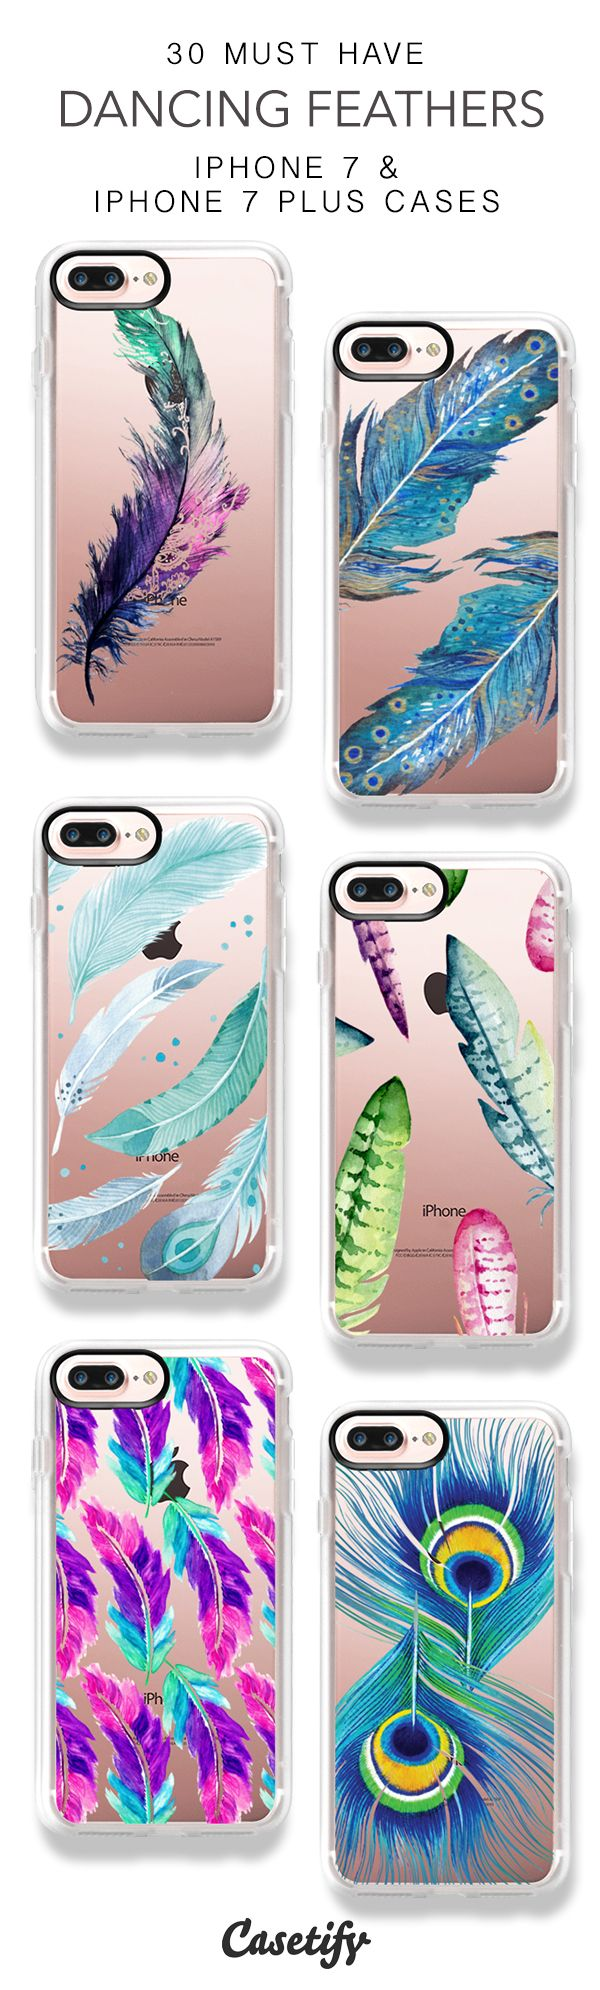 30 Must Have Dancing Feathers iPhone 7 Cases and iPhone 7 Plus Cases. More Feather iPhone case here > https://www.casetify.com/collections/top_100_designs#/?vc=POBlvhpV3S